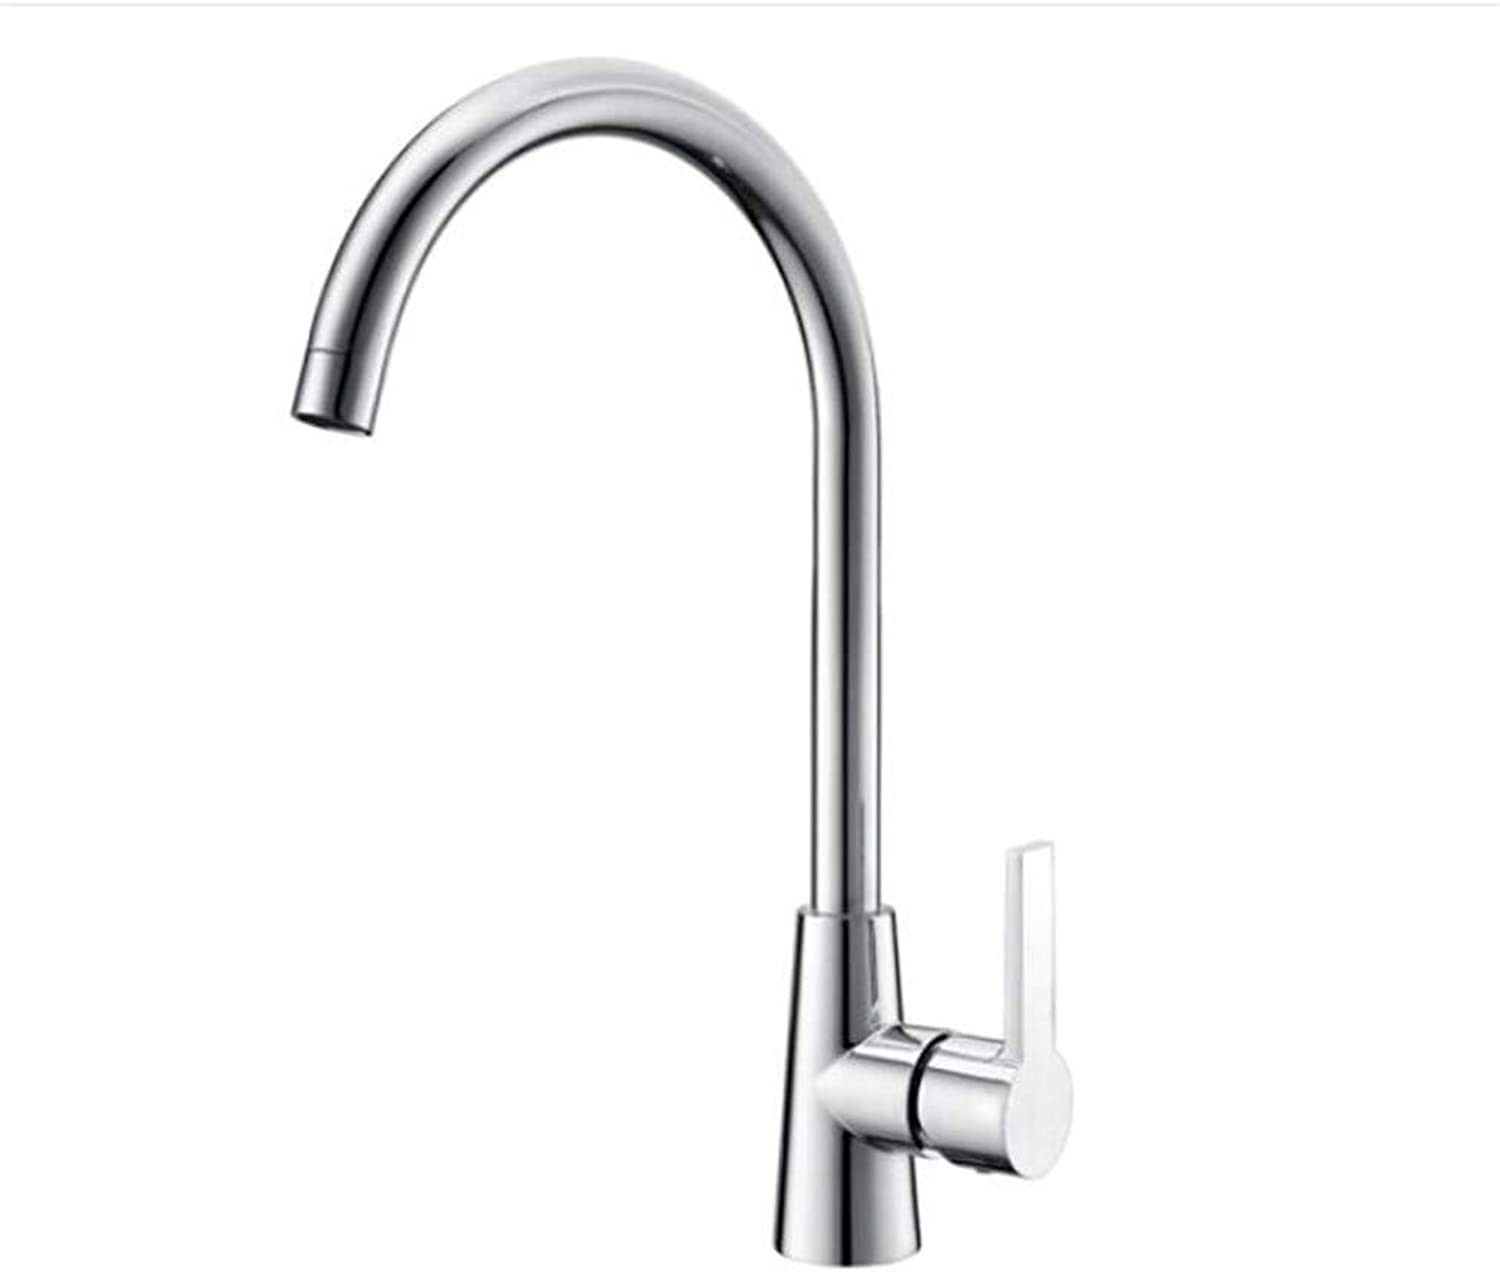 Bathroom Sink Basin Lever Mixer Tap Kitchen Faucet Cold and Hot Water Tank Faucet Dishwasher Sink Faucet